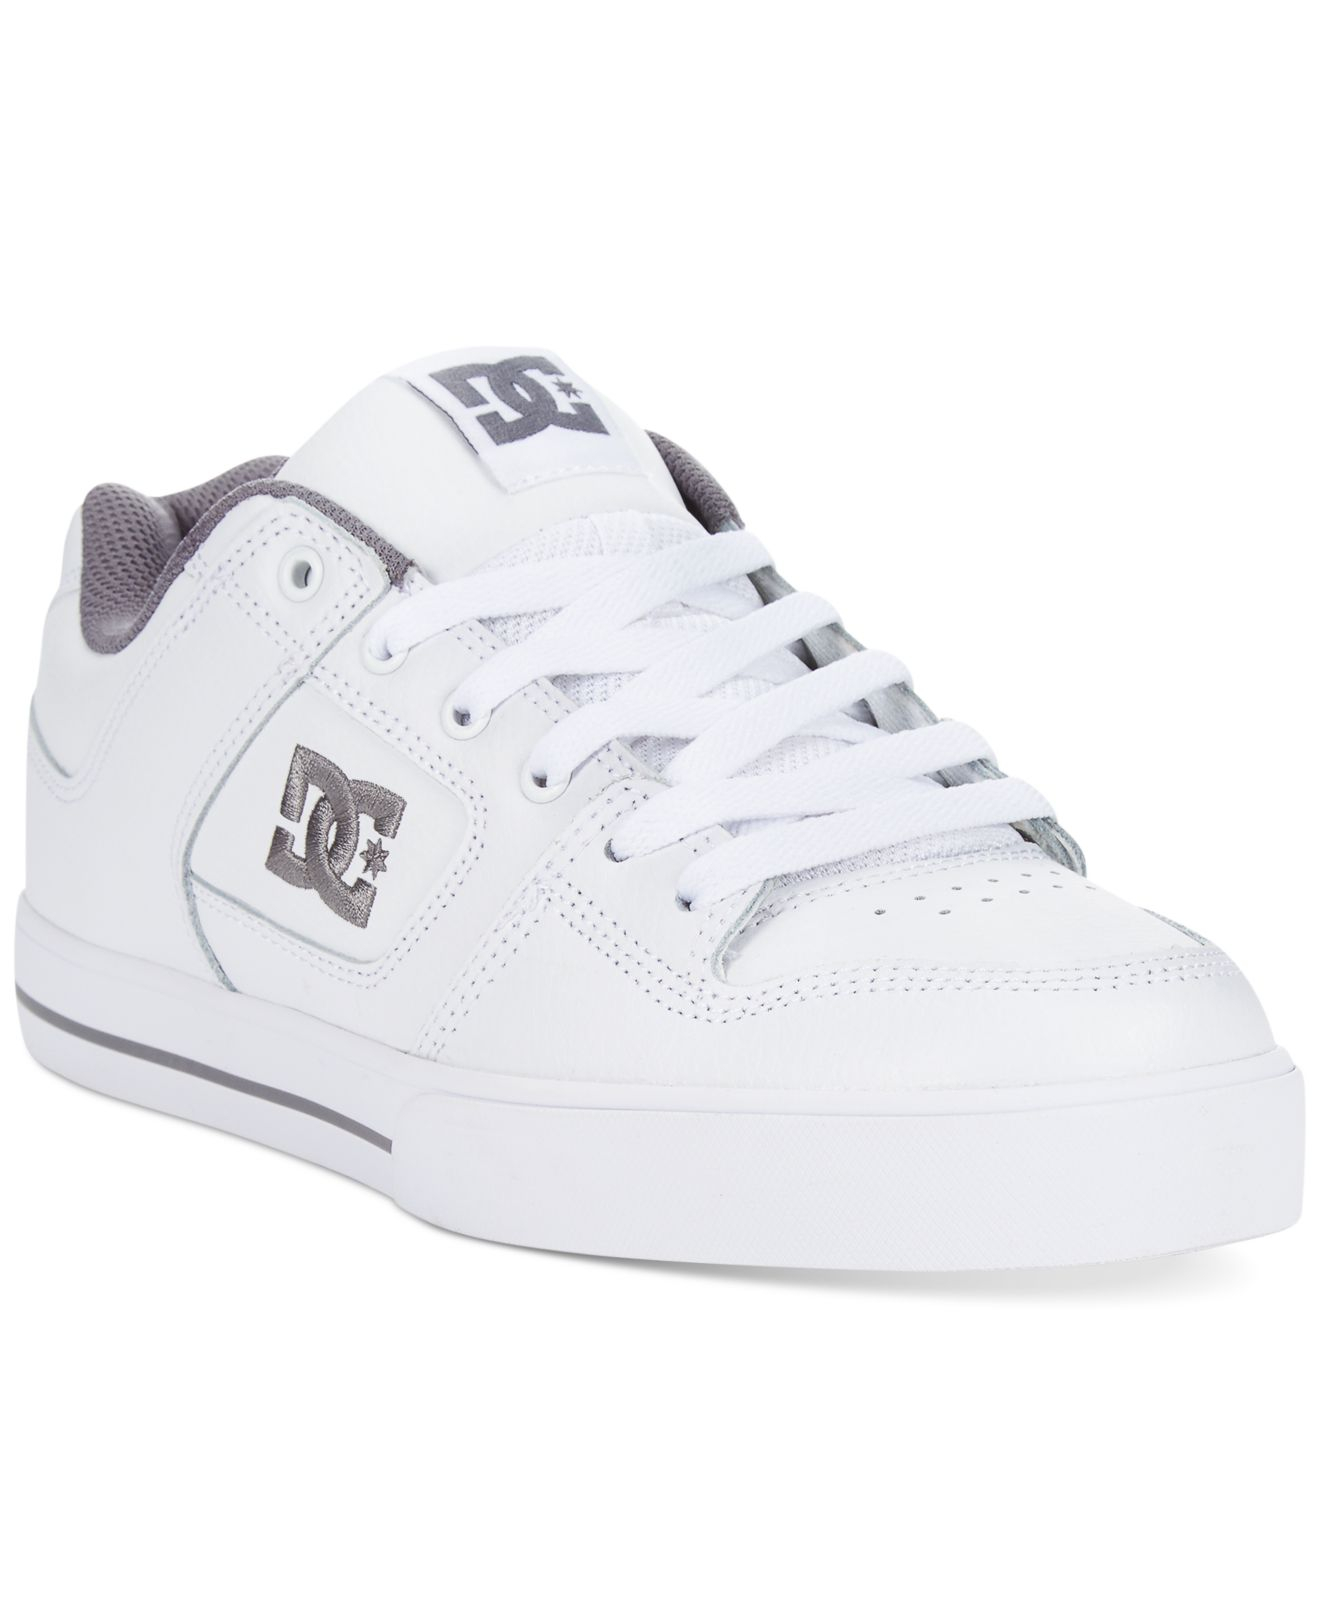 dc shoes pure sneakers in white for men lyst. Black Bedroom Furniture Sets. Home Design Ideas